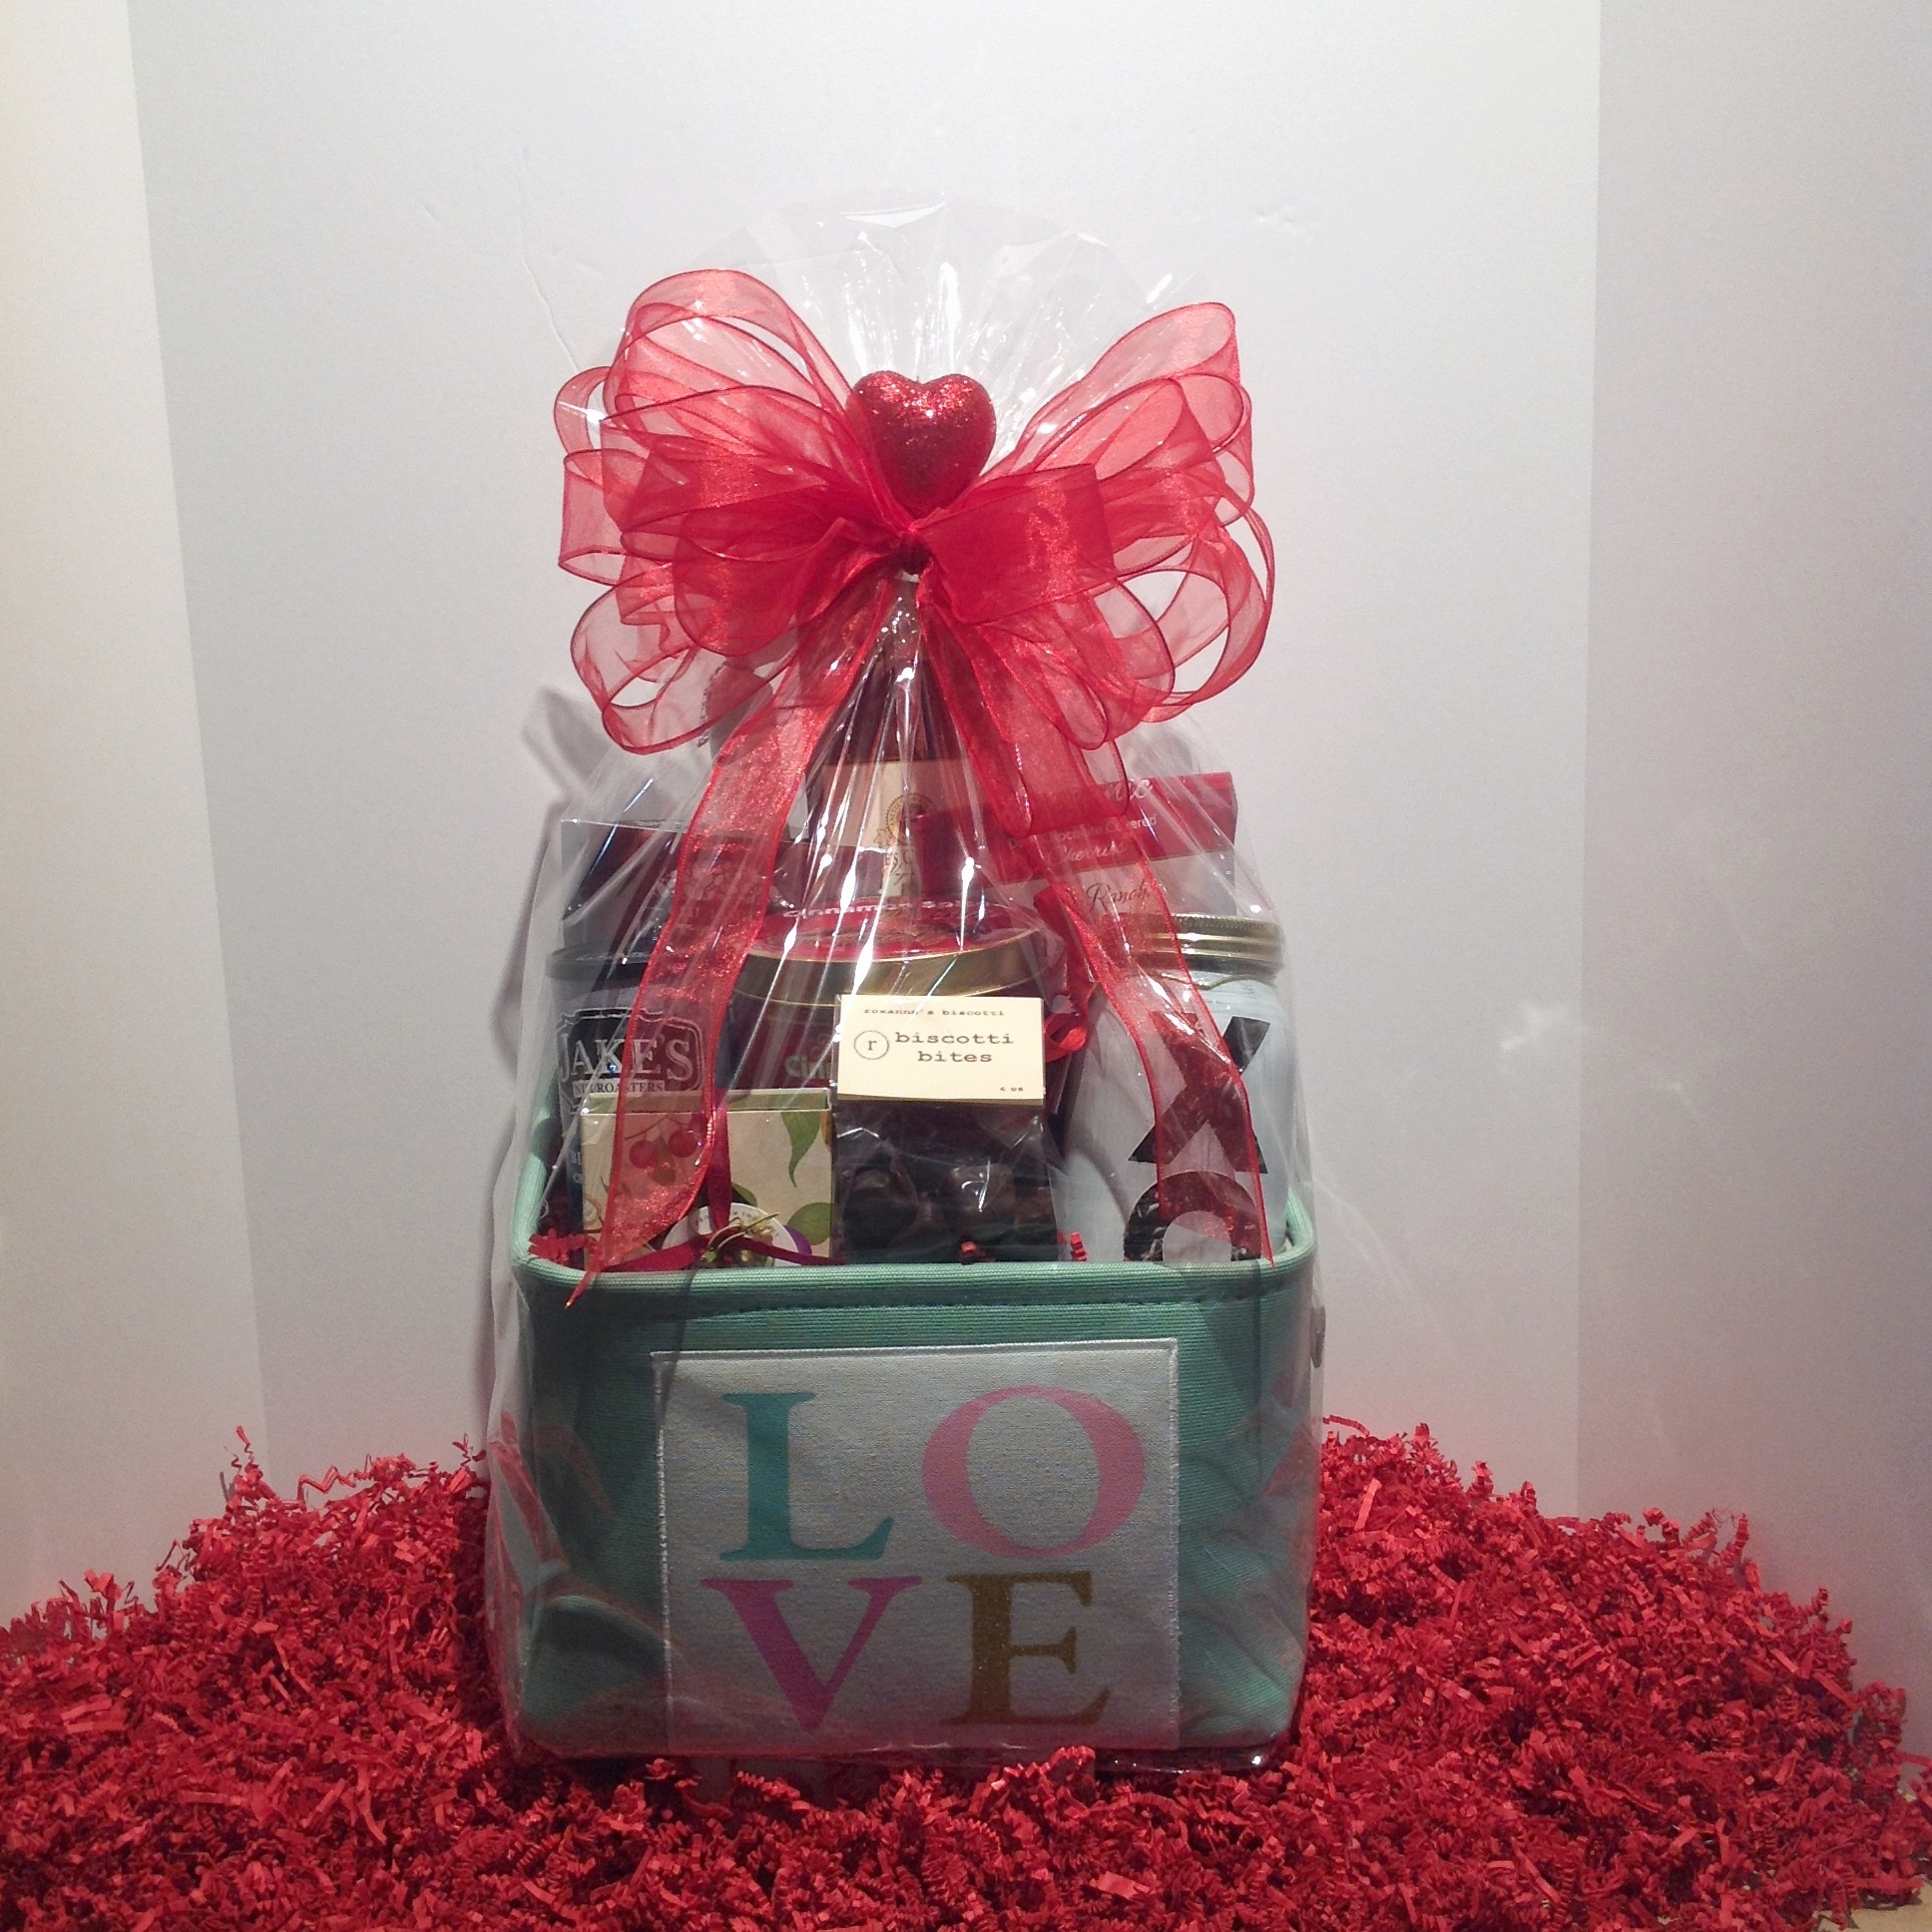 Enter To Win This Valentine S Day Gift Basket From Present Present Los Altos